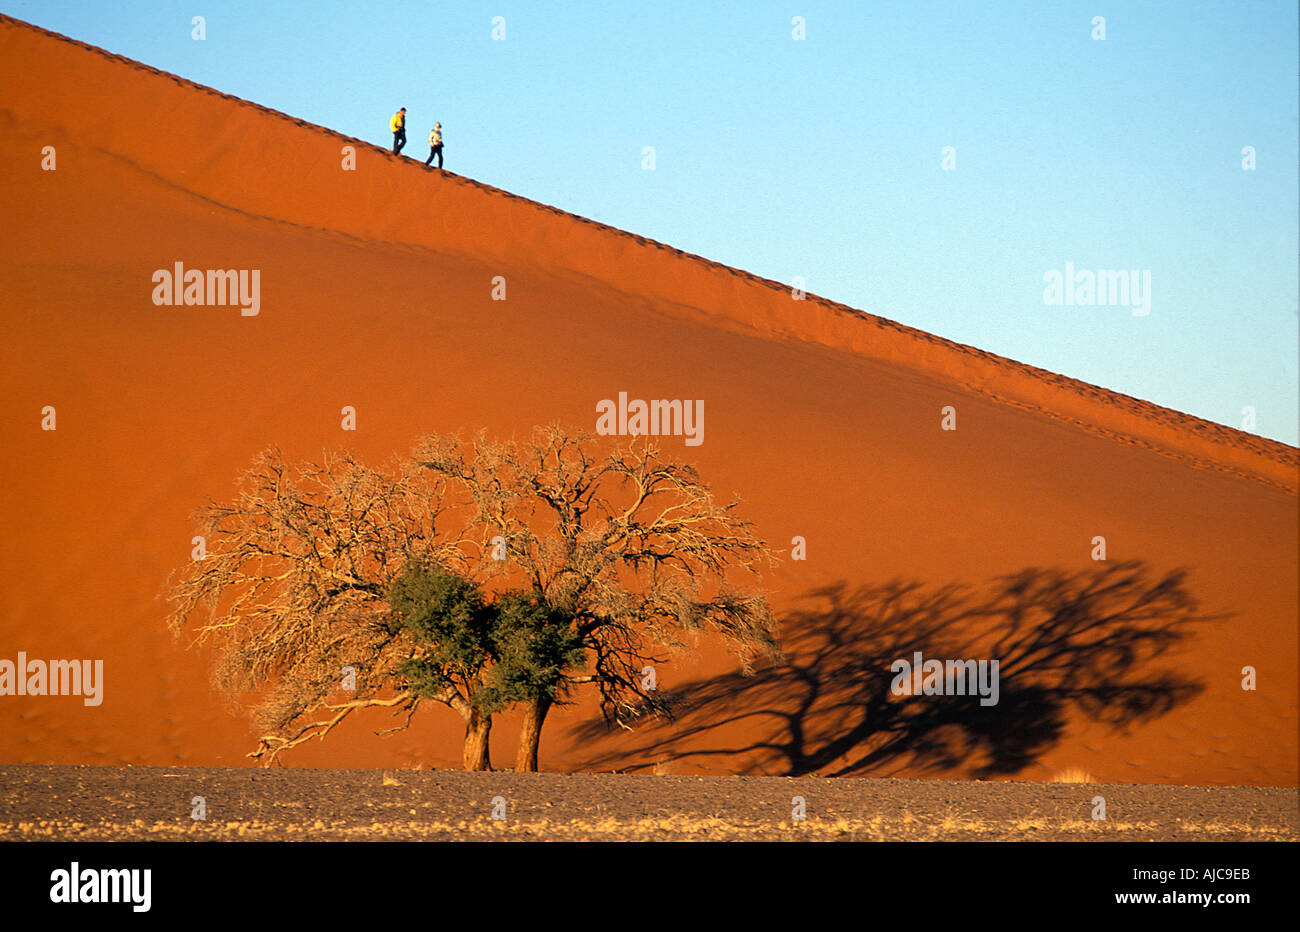 Early morning sun lights Dune 45 travellers heading down from top Namib Naukluft National Park Namibia - Stock Image